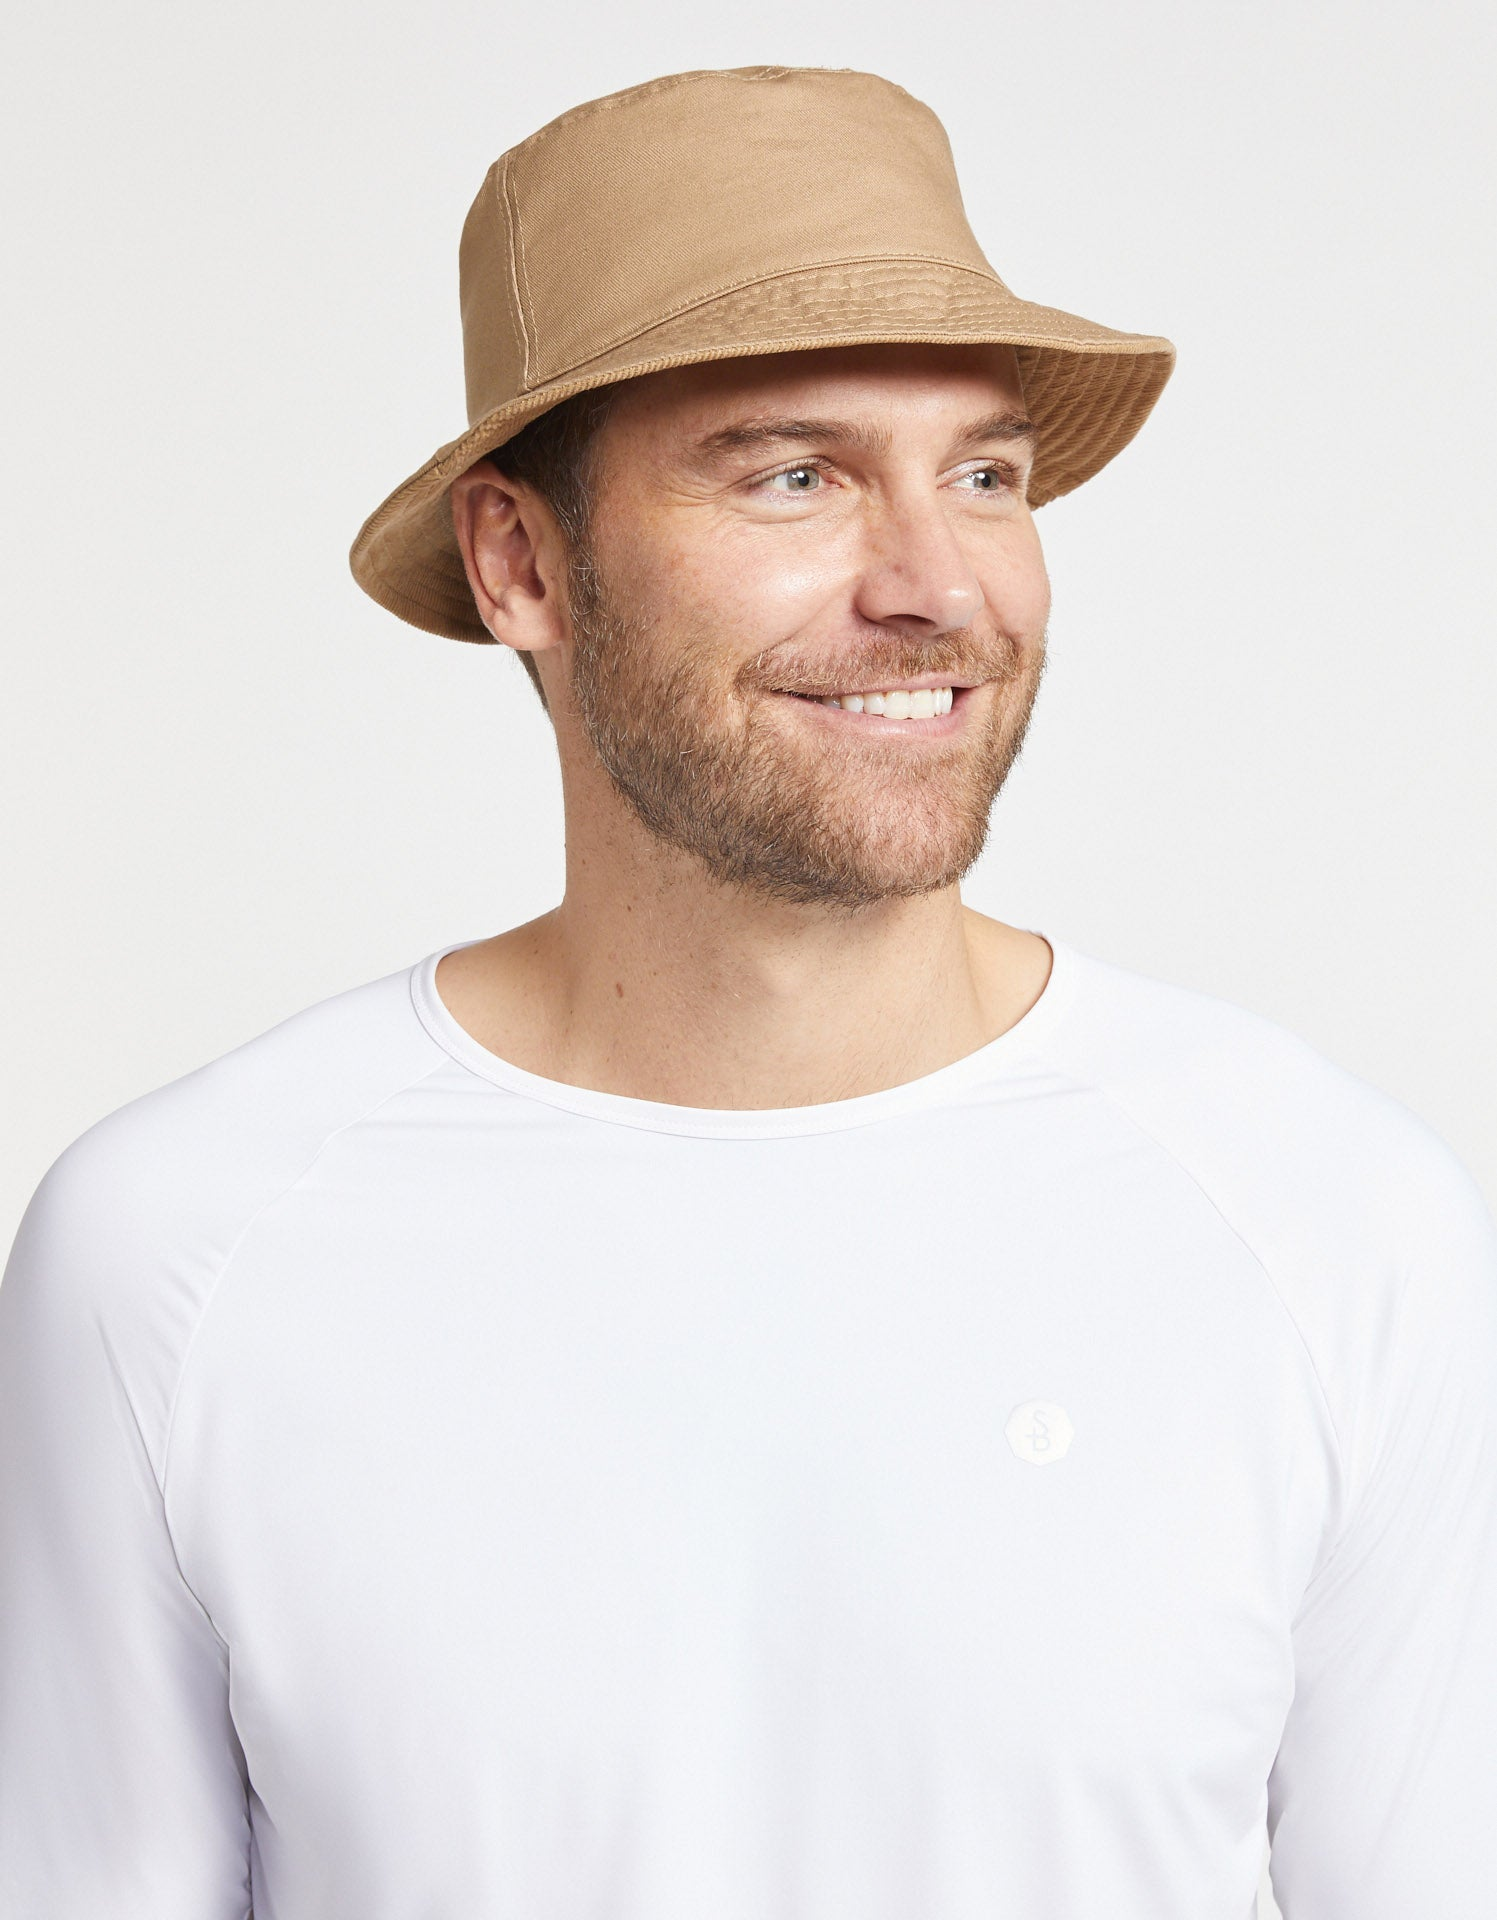 Solbari Sun Protection Men UPF50+ Corduroy Reversible Bucket Hat in Light Brown with Beige Underside